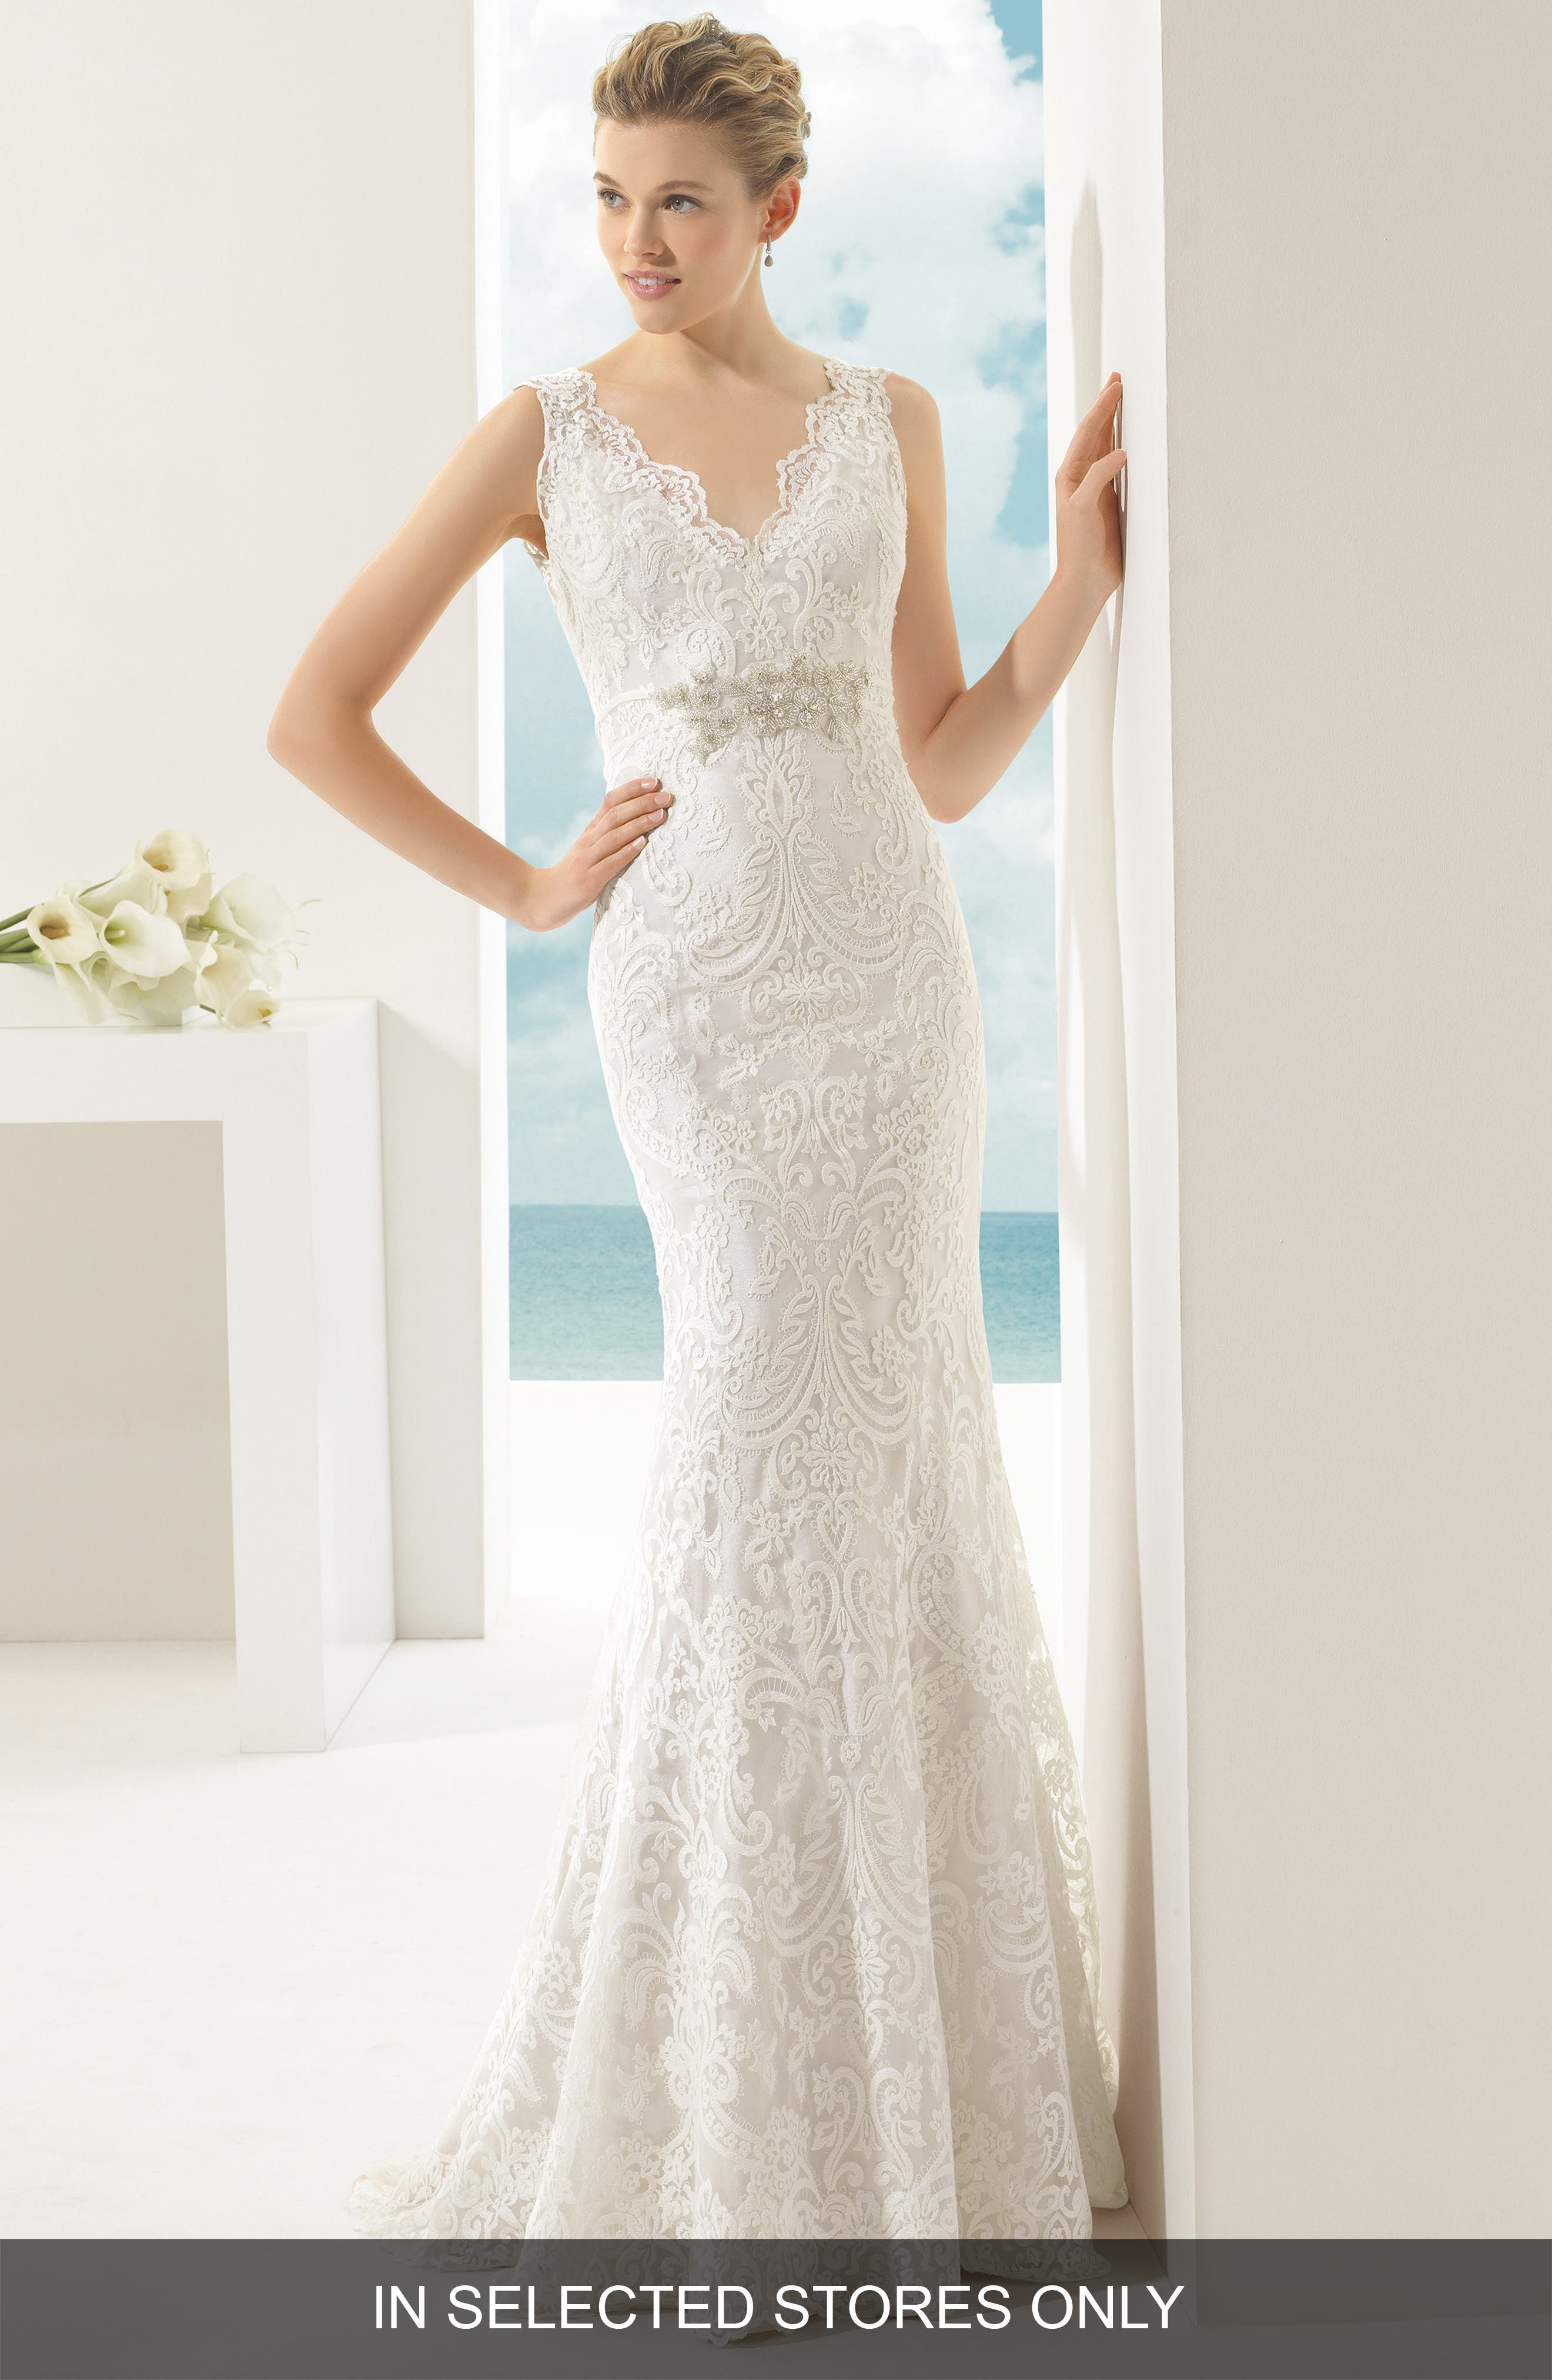 Vigo Beaded V-Neck Lace Overlay Mermaid Dress,                             Main thumbnail 1, color,                             Ivory